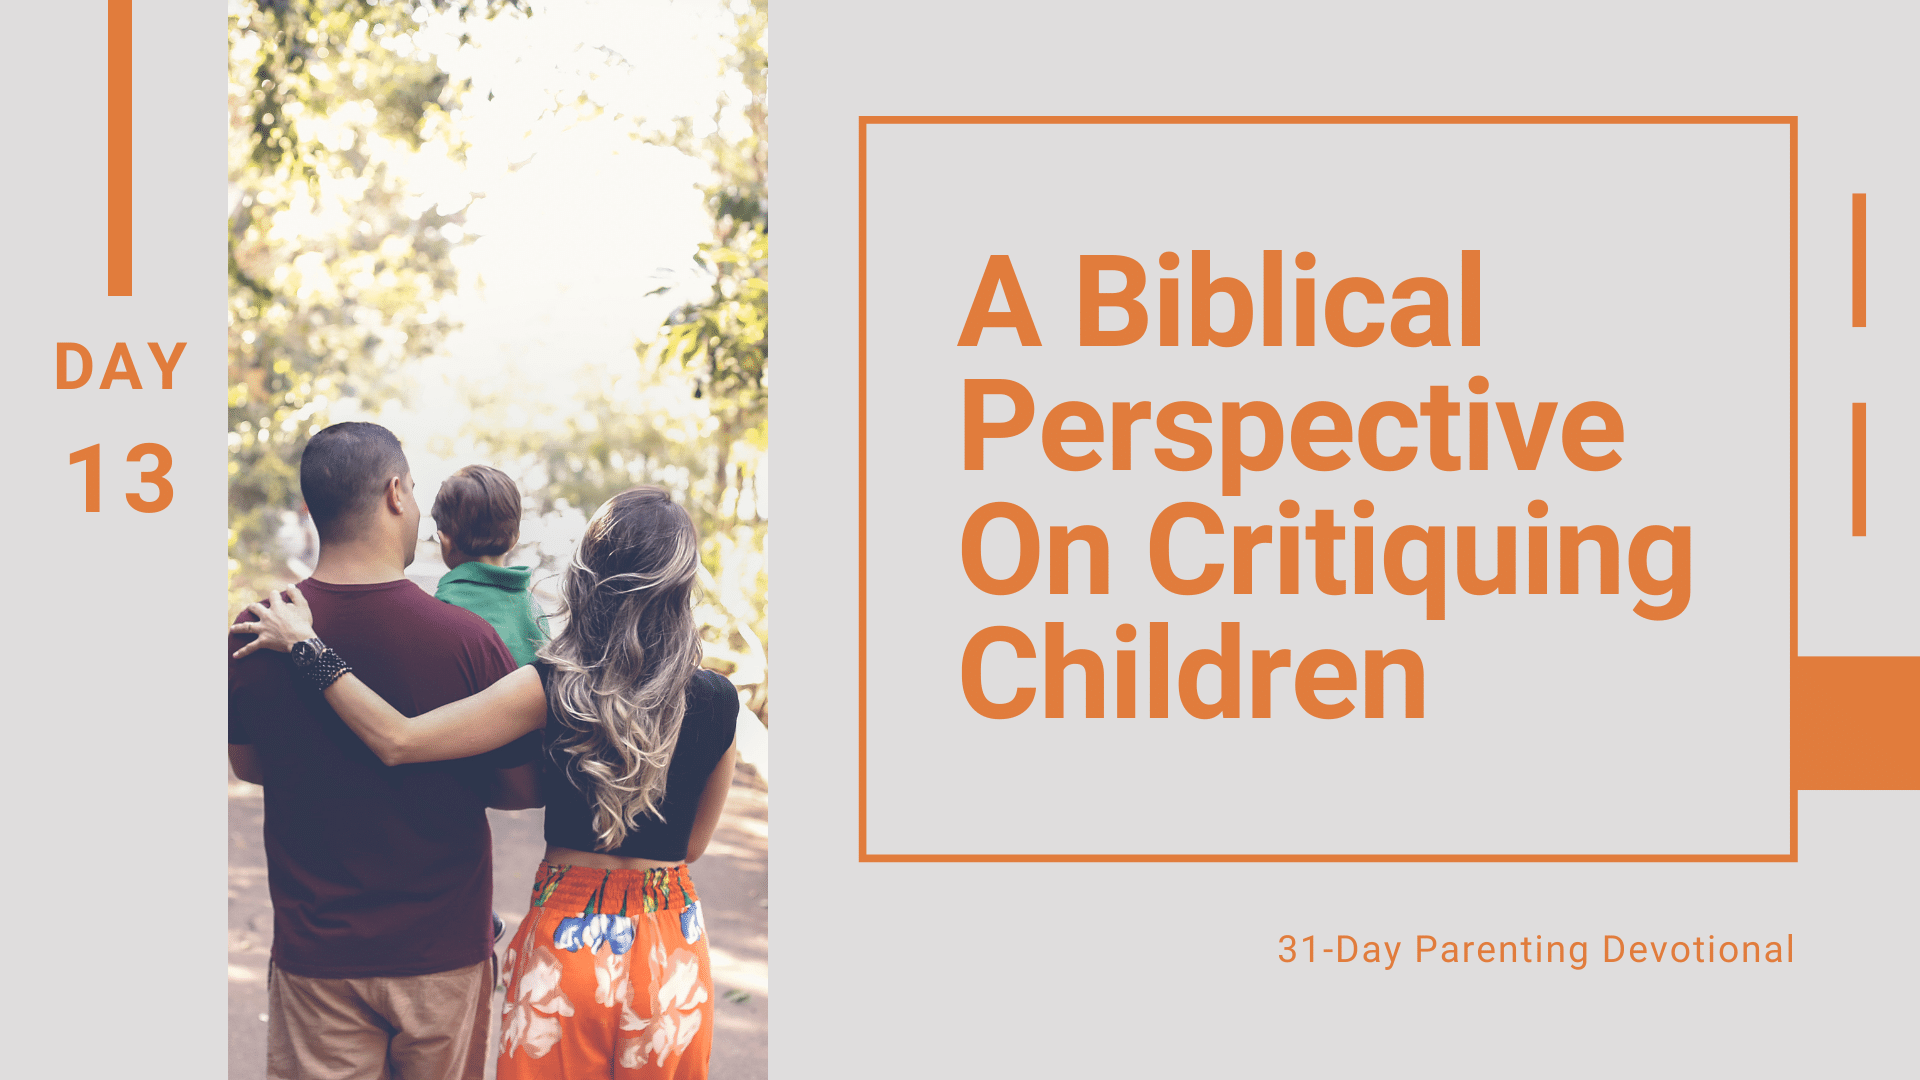 13 A Biblical Perspective On Critiquing Children, Day 13